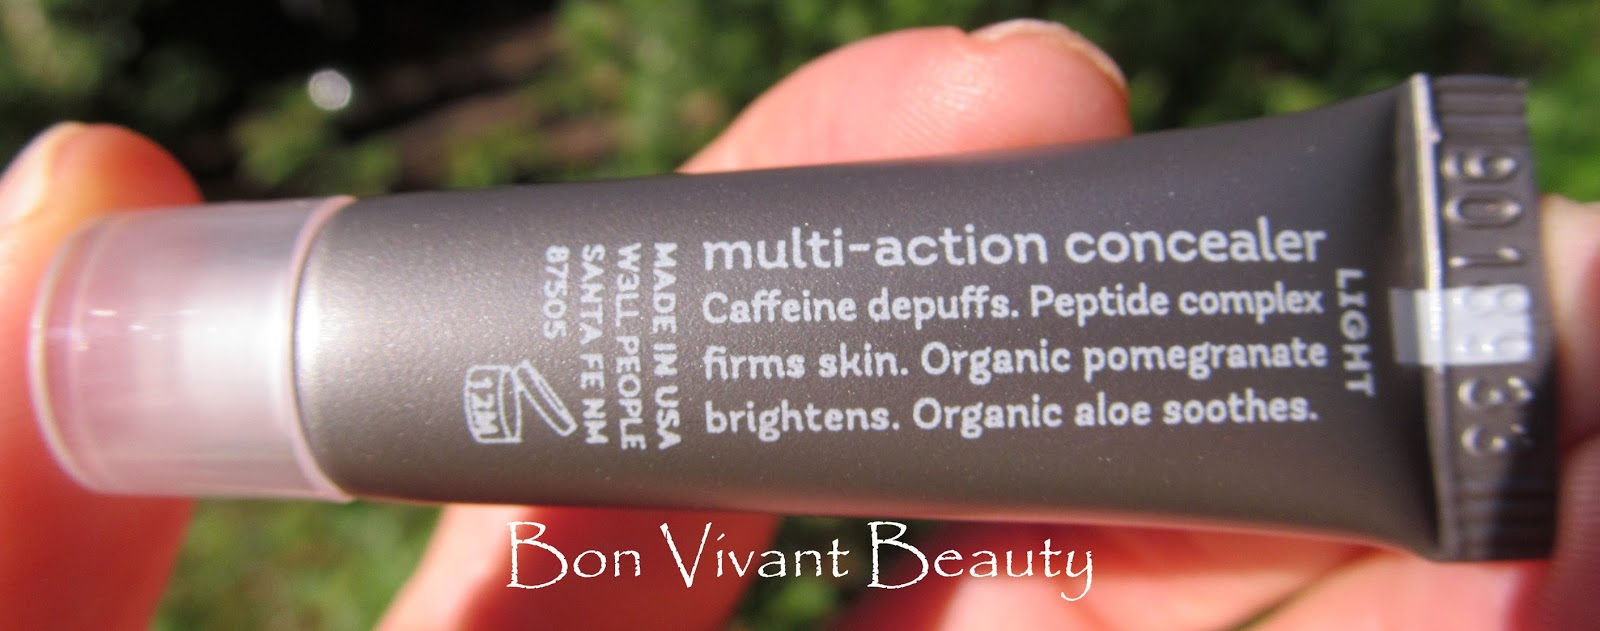 Bio Correct Multi-Action Concealer by w3ll people #14